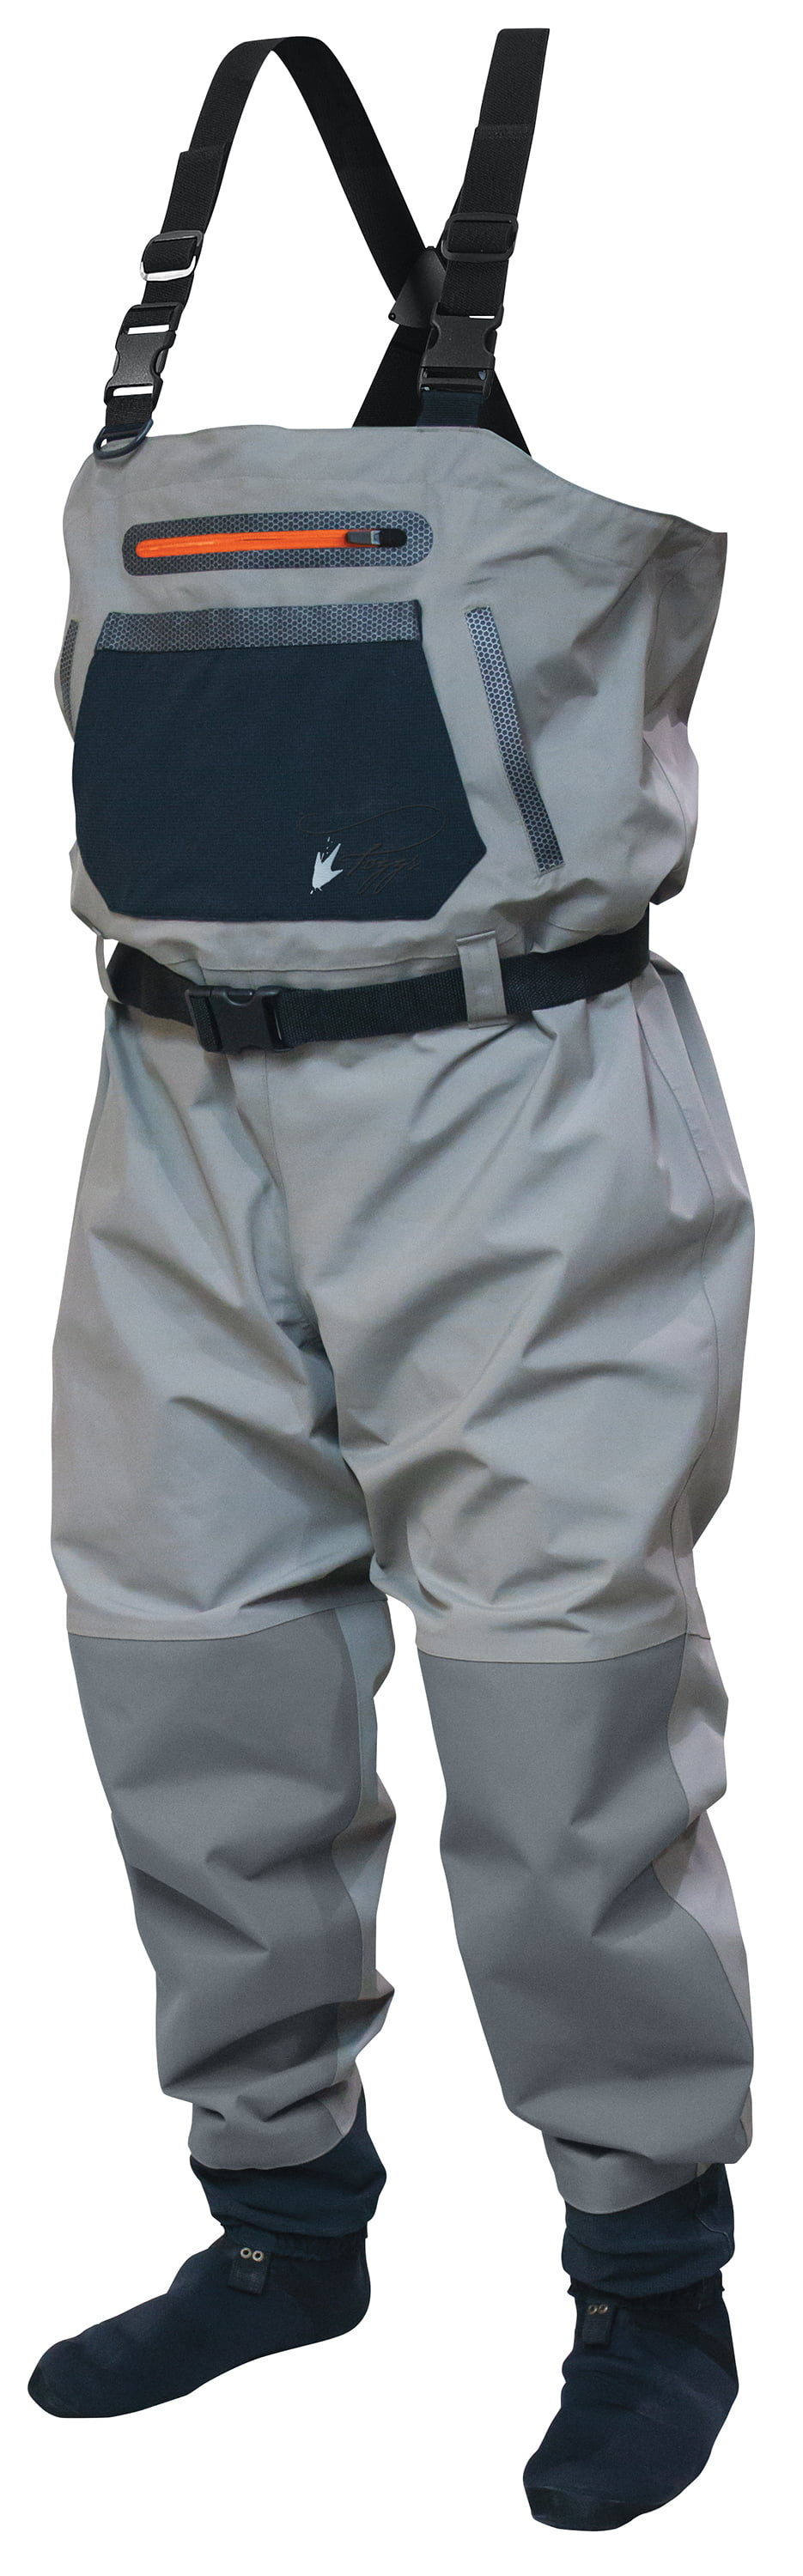 Sierran Breathable Stockingfoot Chest Wader by Frogg Toggs